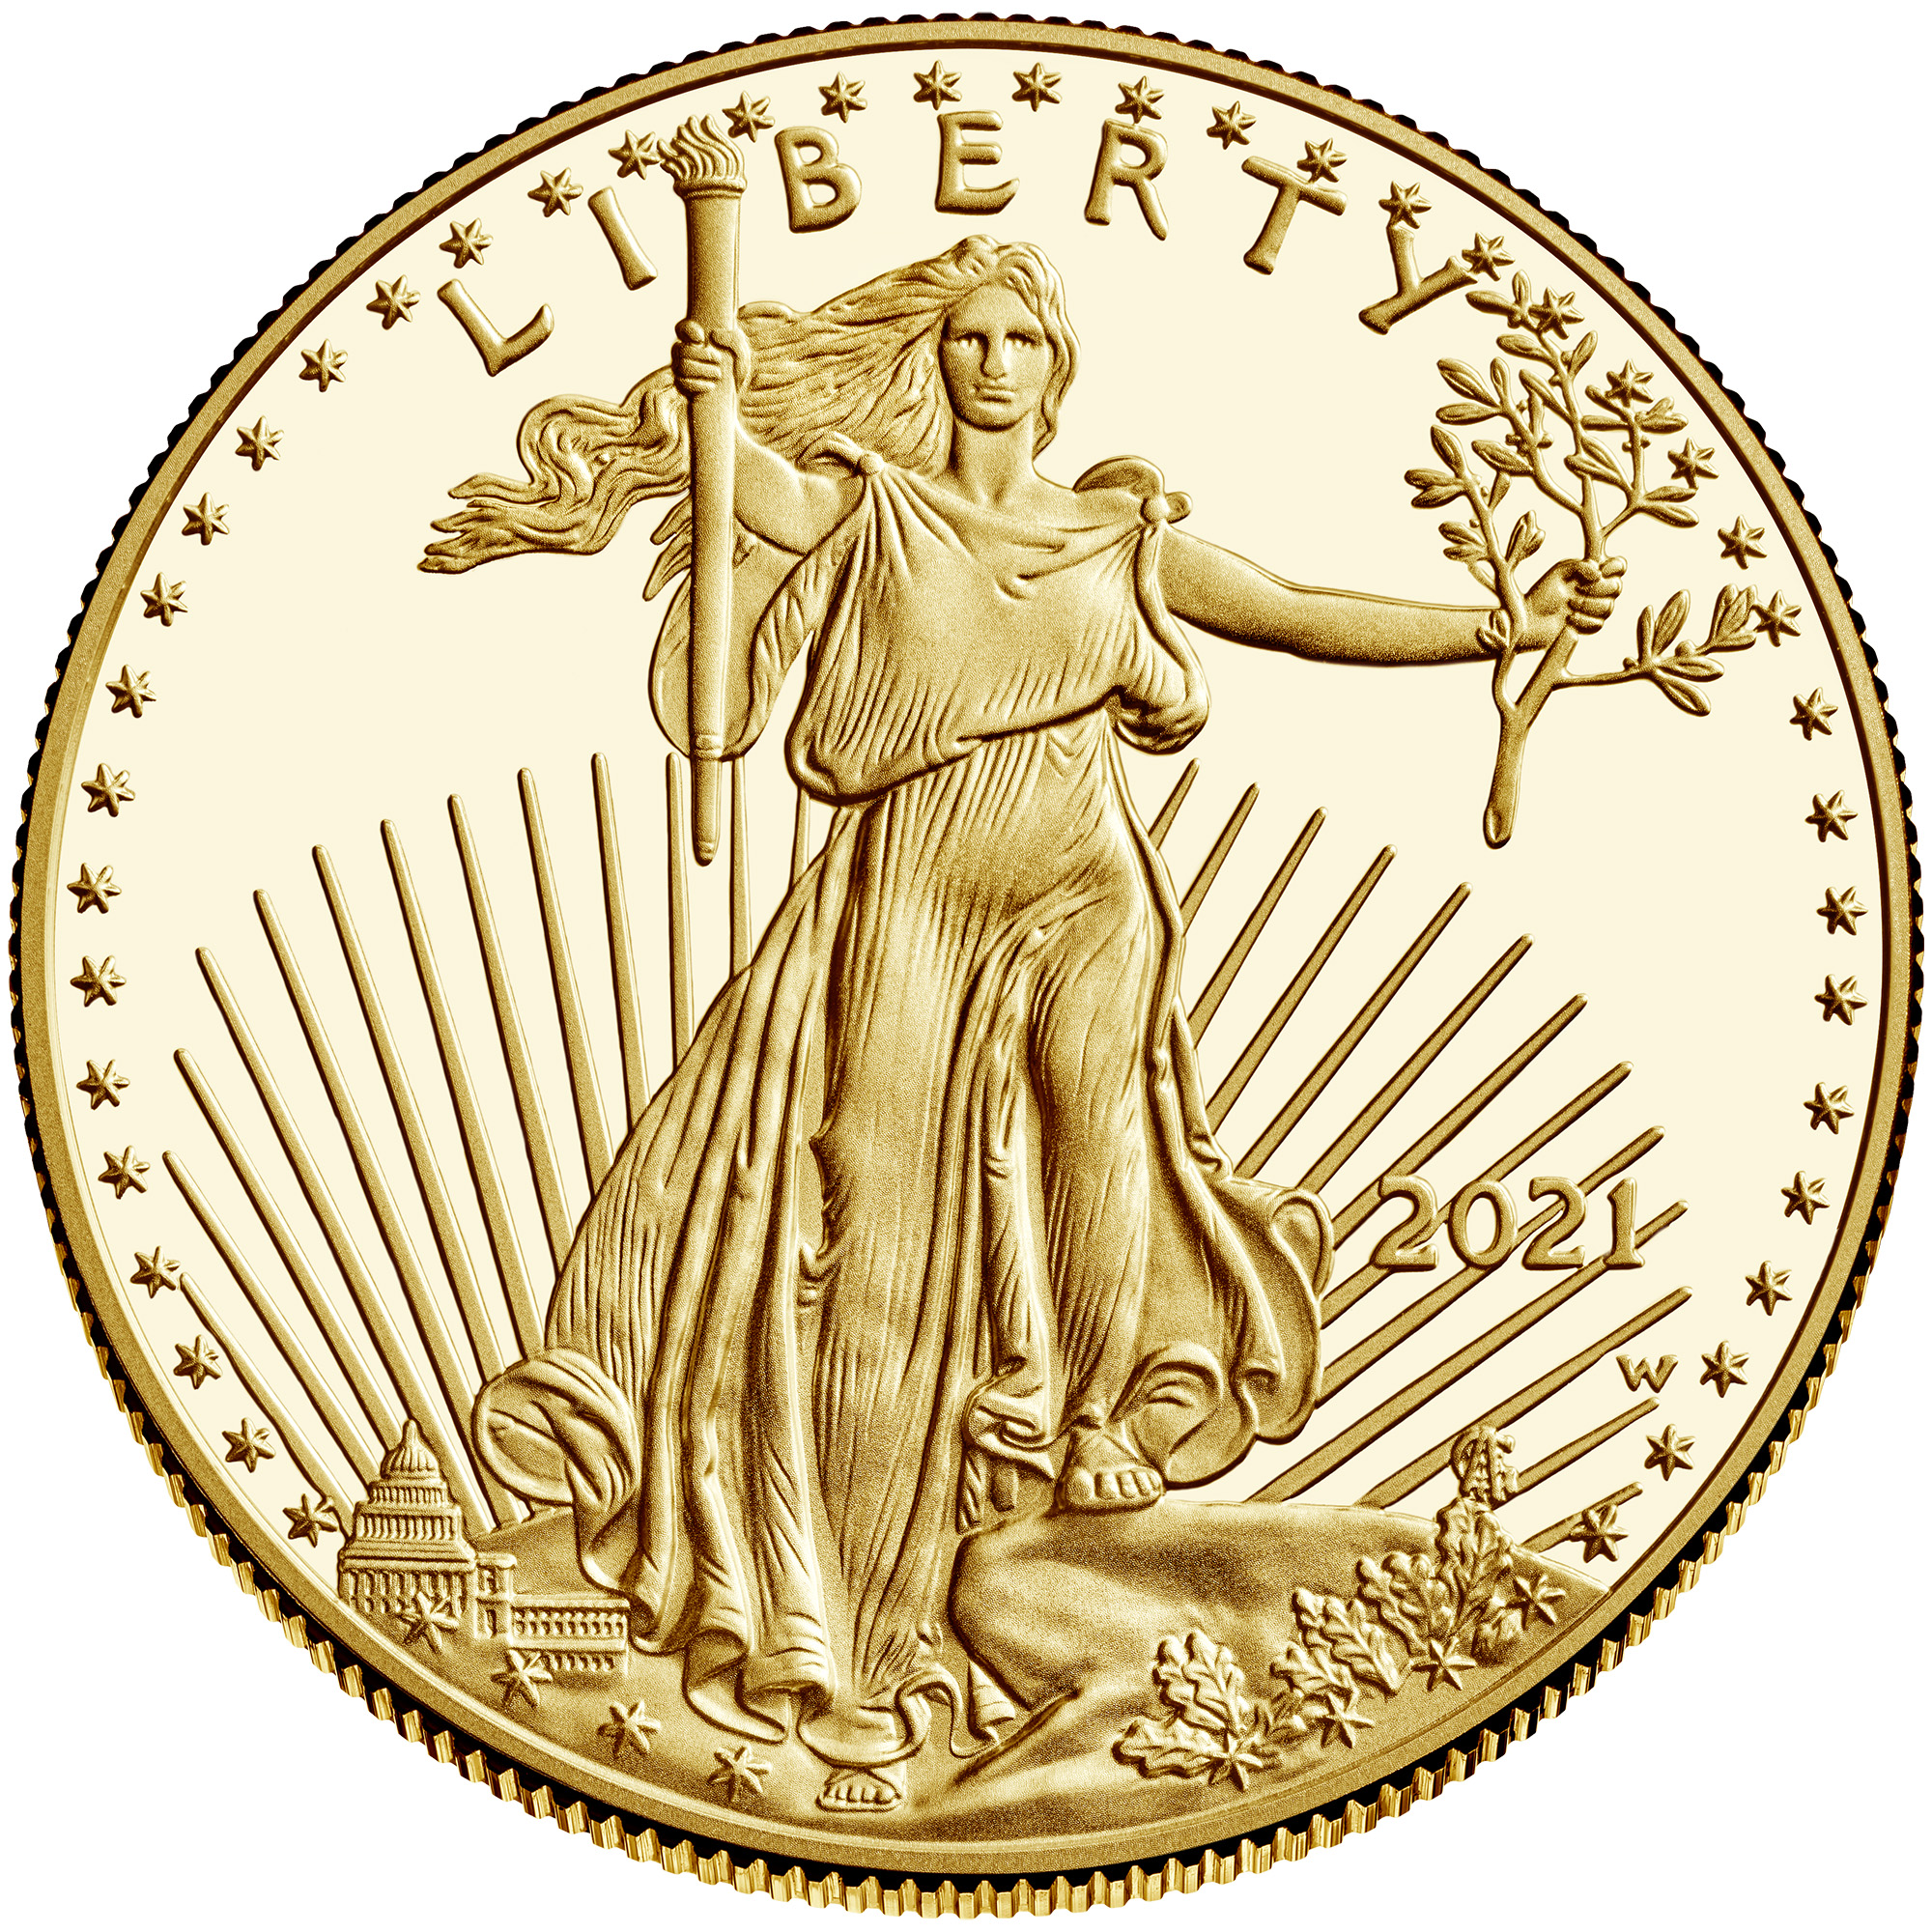 2021 American Eagle Gold One Ounce Proof Coin Obverse Old Design